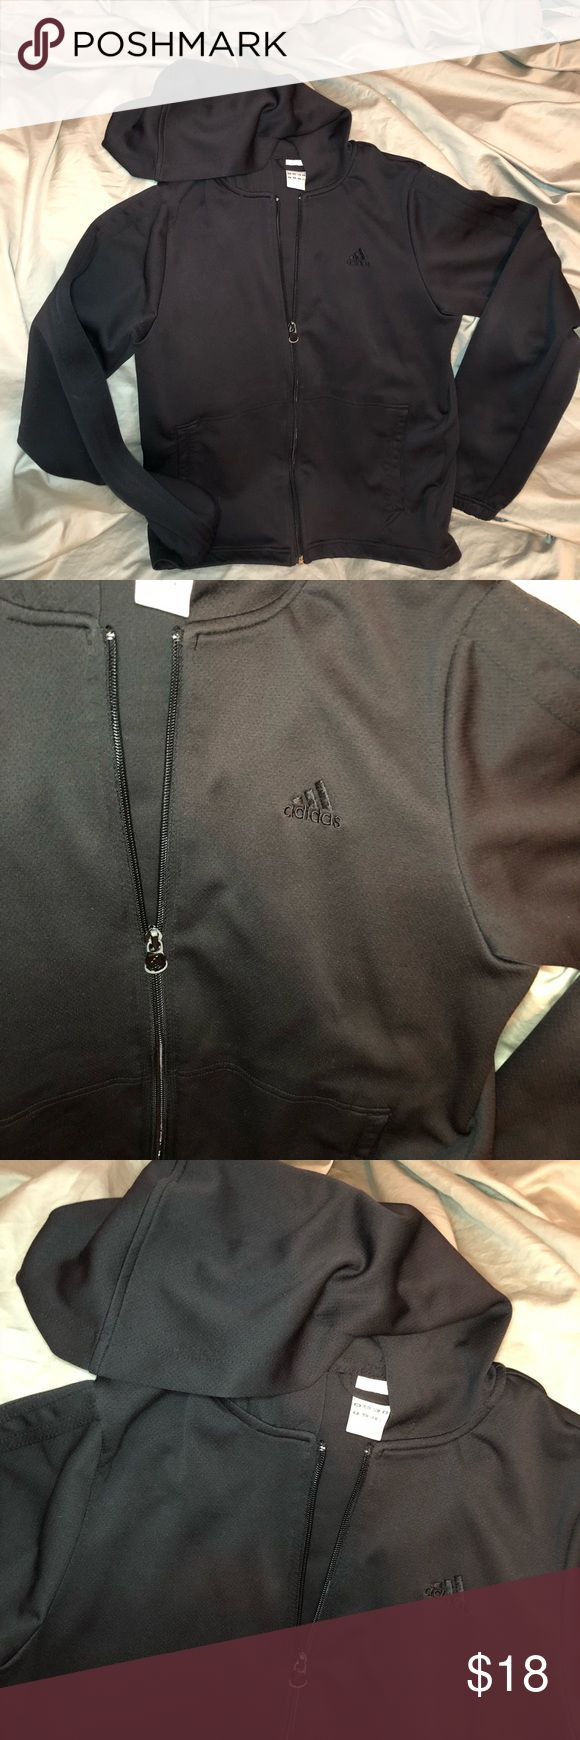 Adidas Zip Up Hoodie All black Adidas zip up hoodie. Please see photo for zipper pull imperfections. adidas Jackets & Coats